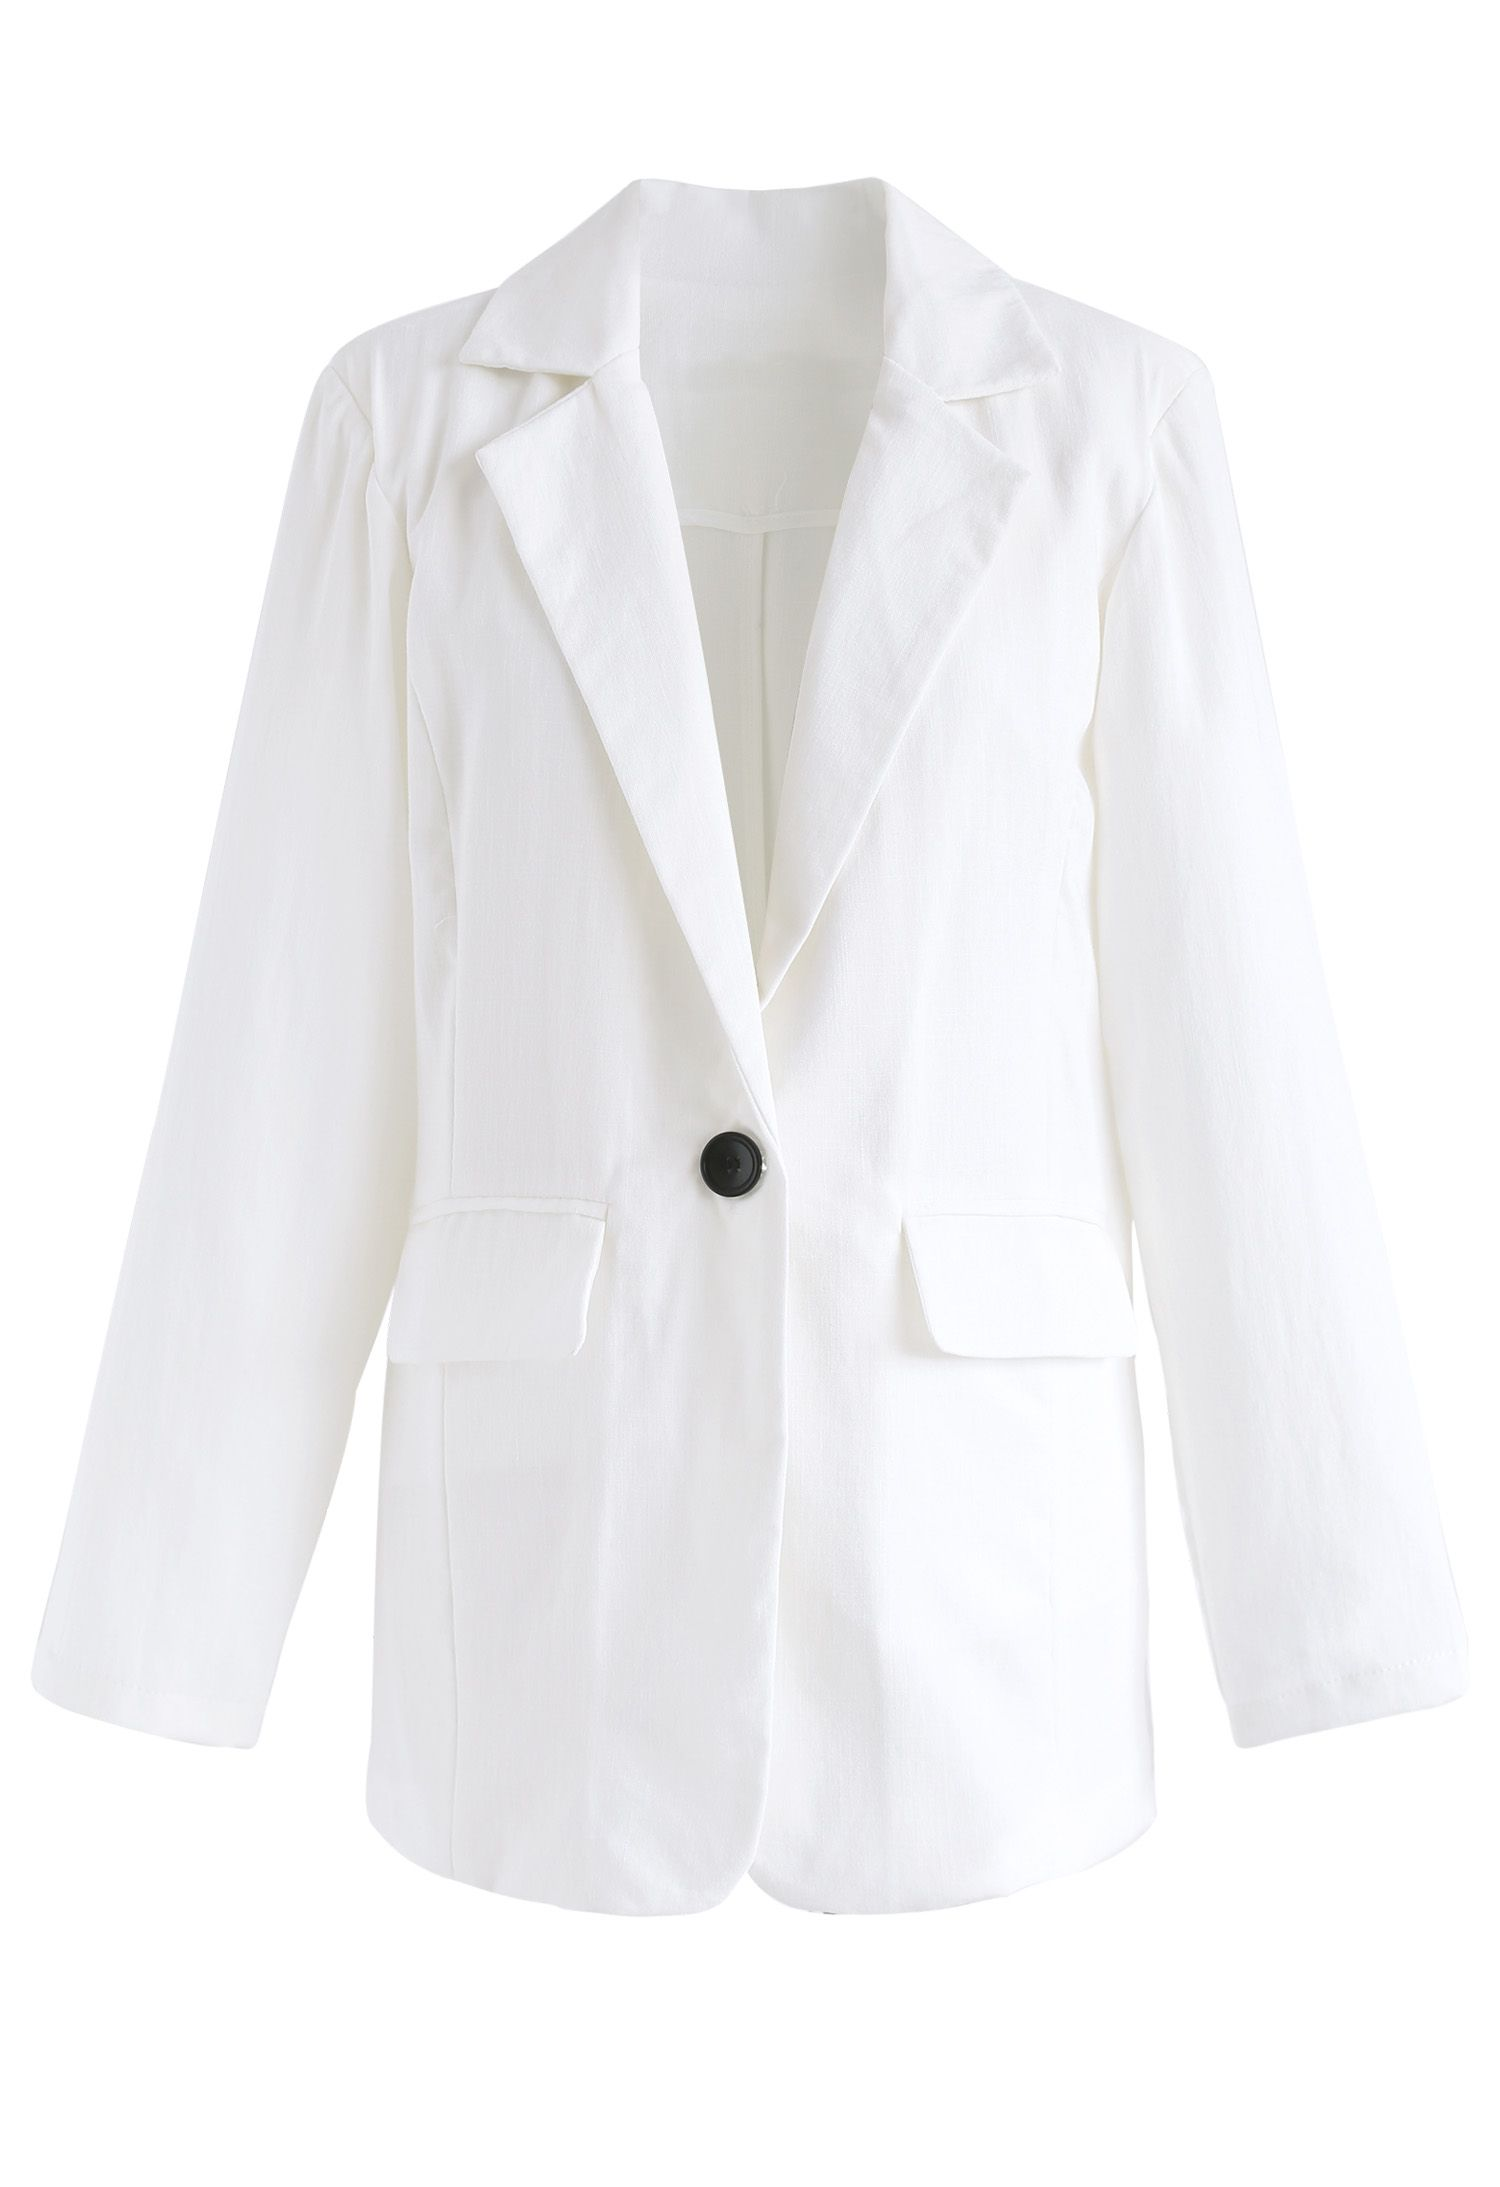 Just Like This Frontline Blazer in White